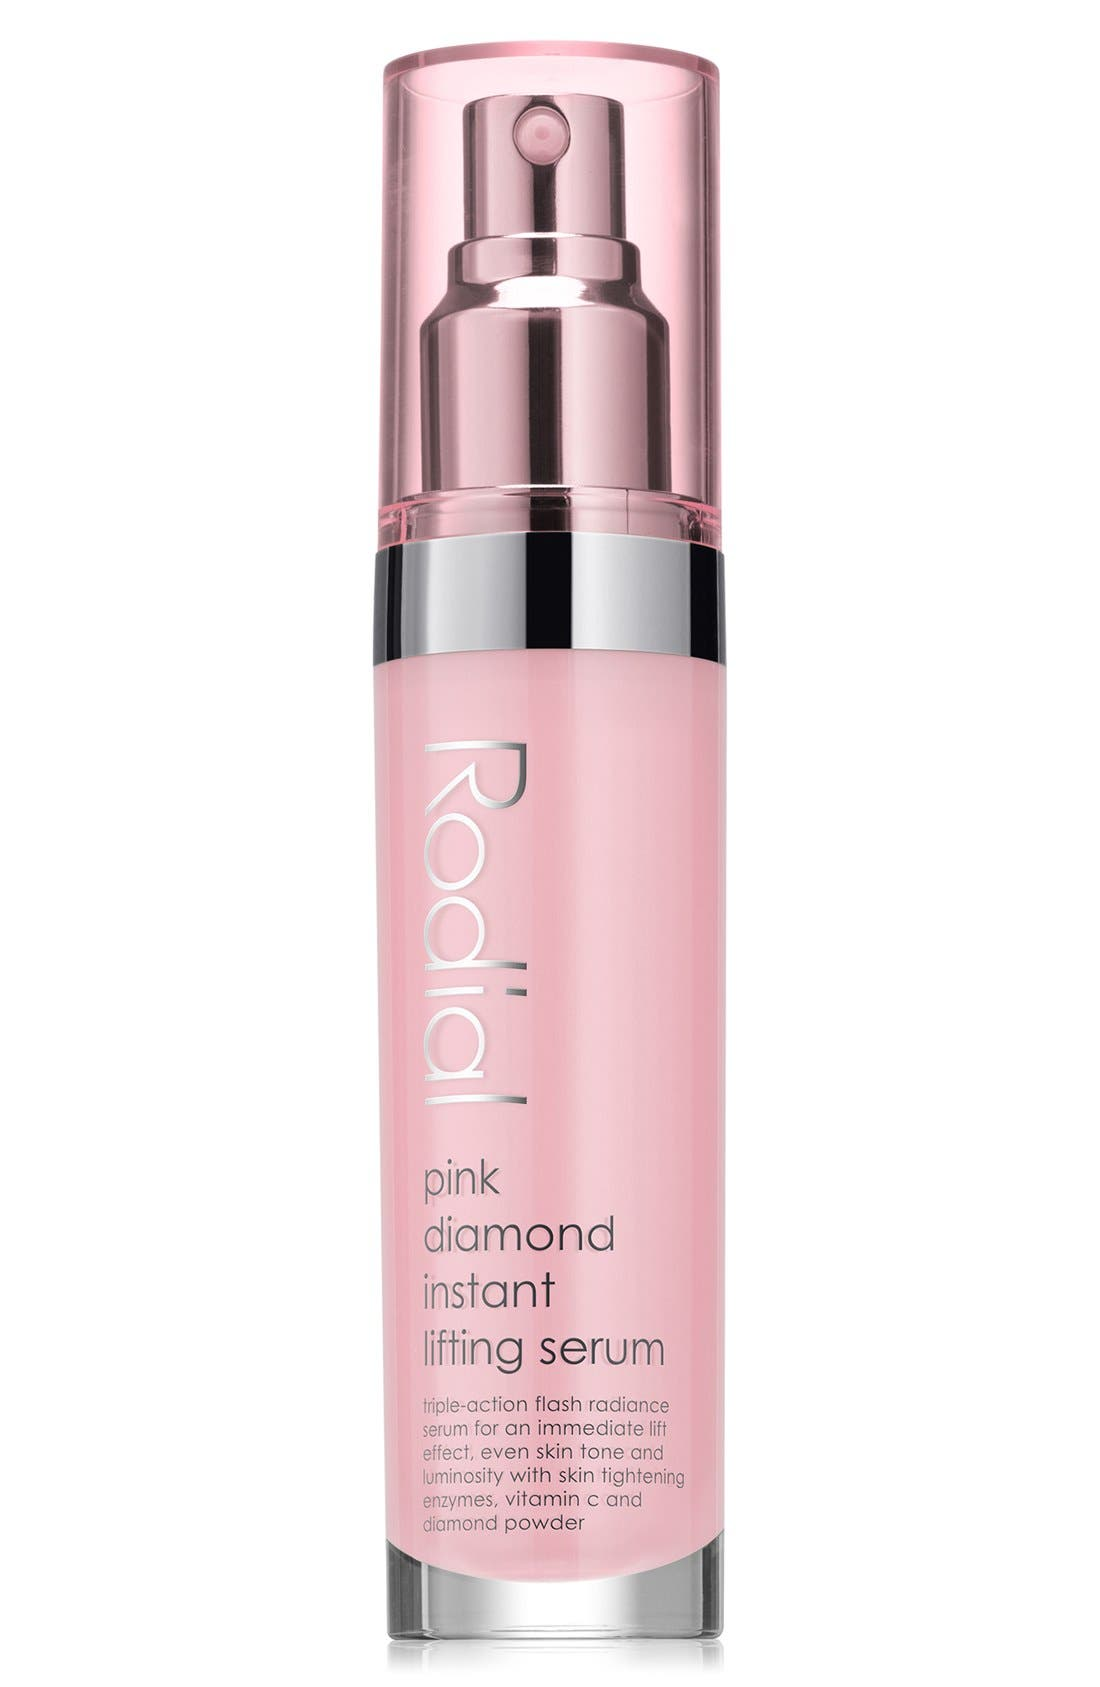 SPACE.NK.apothecary Rodial Pink Diamond Instant Lifting Serum